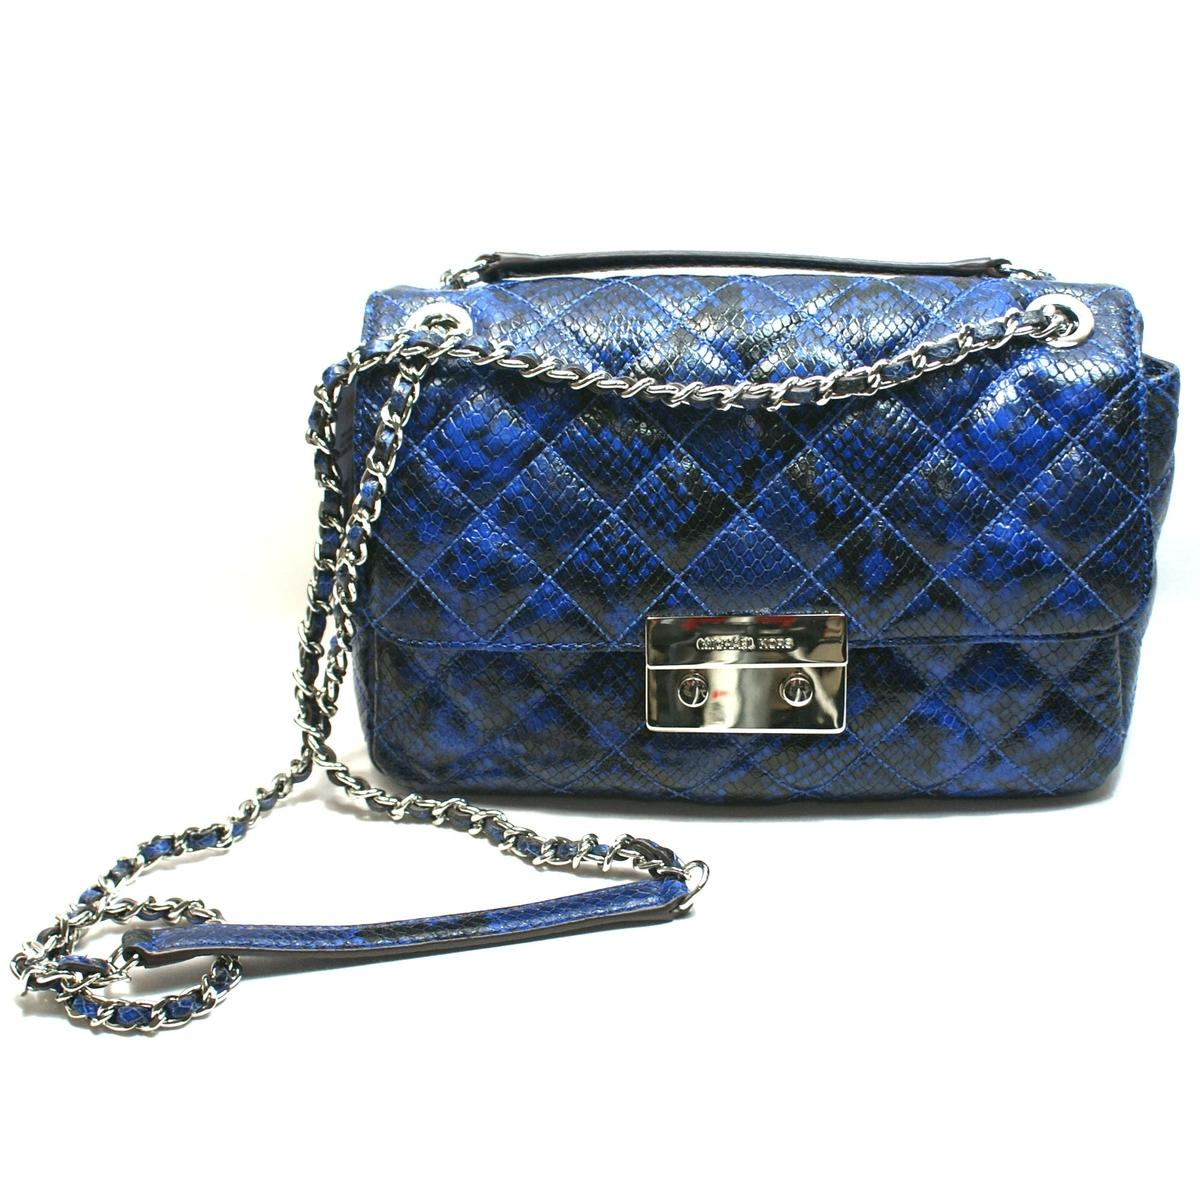 1867e990edd4 Home · Michael Kors · Sloan Flap Chain Shoulder Embossed Leather Bag/  Swing/ Crossbody Bag. CLICK THUMBNAIL TO ZOOM. Found ...